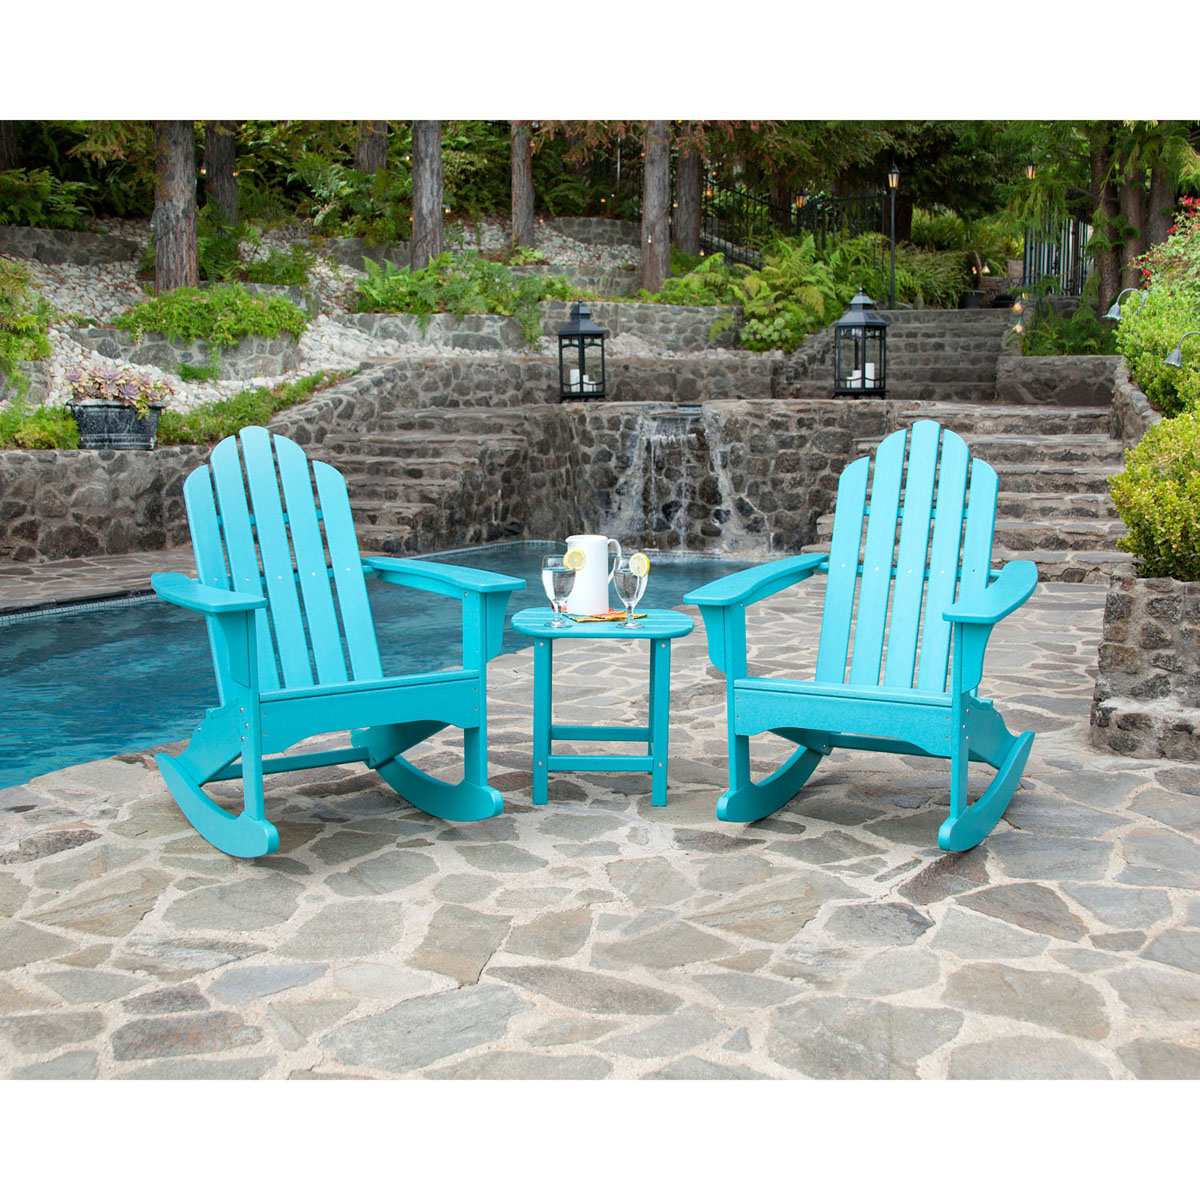 Hanover 3 Piece Adirondack Rocking Chair Set With 2